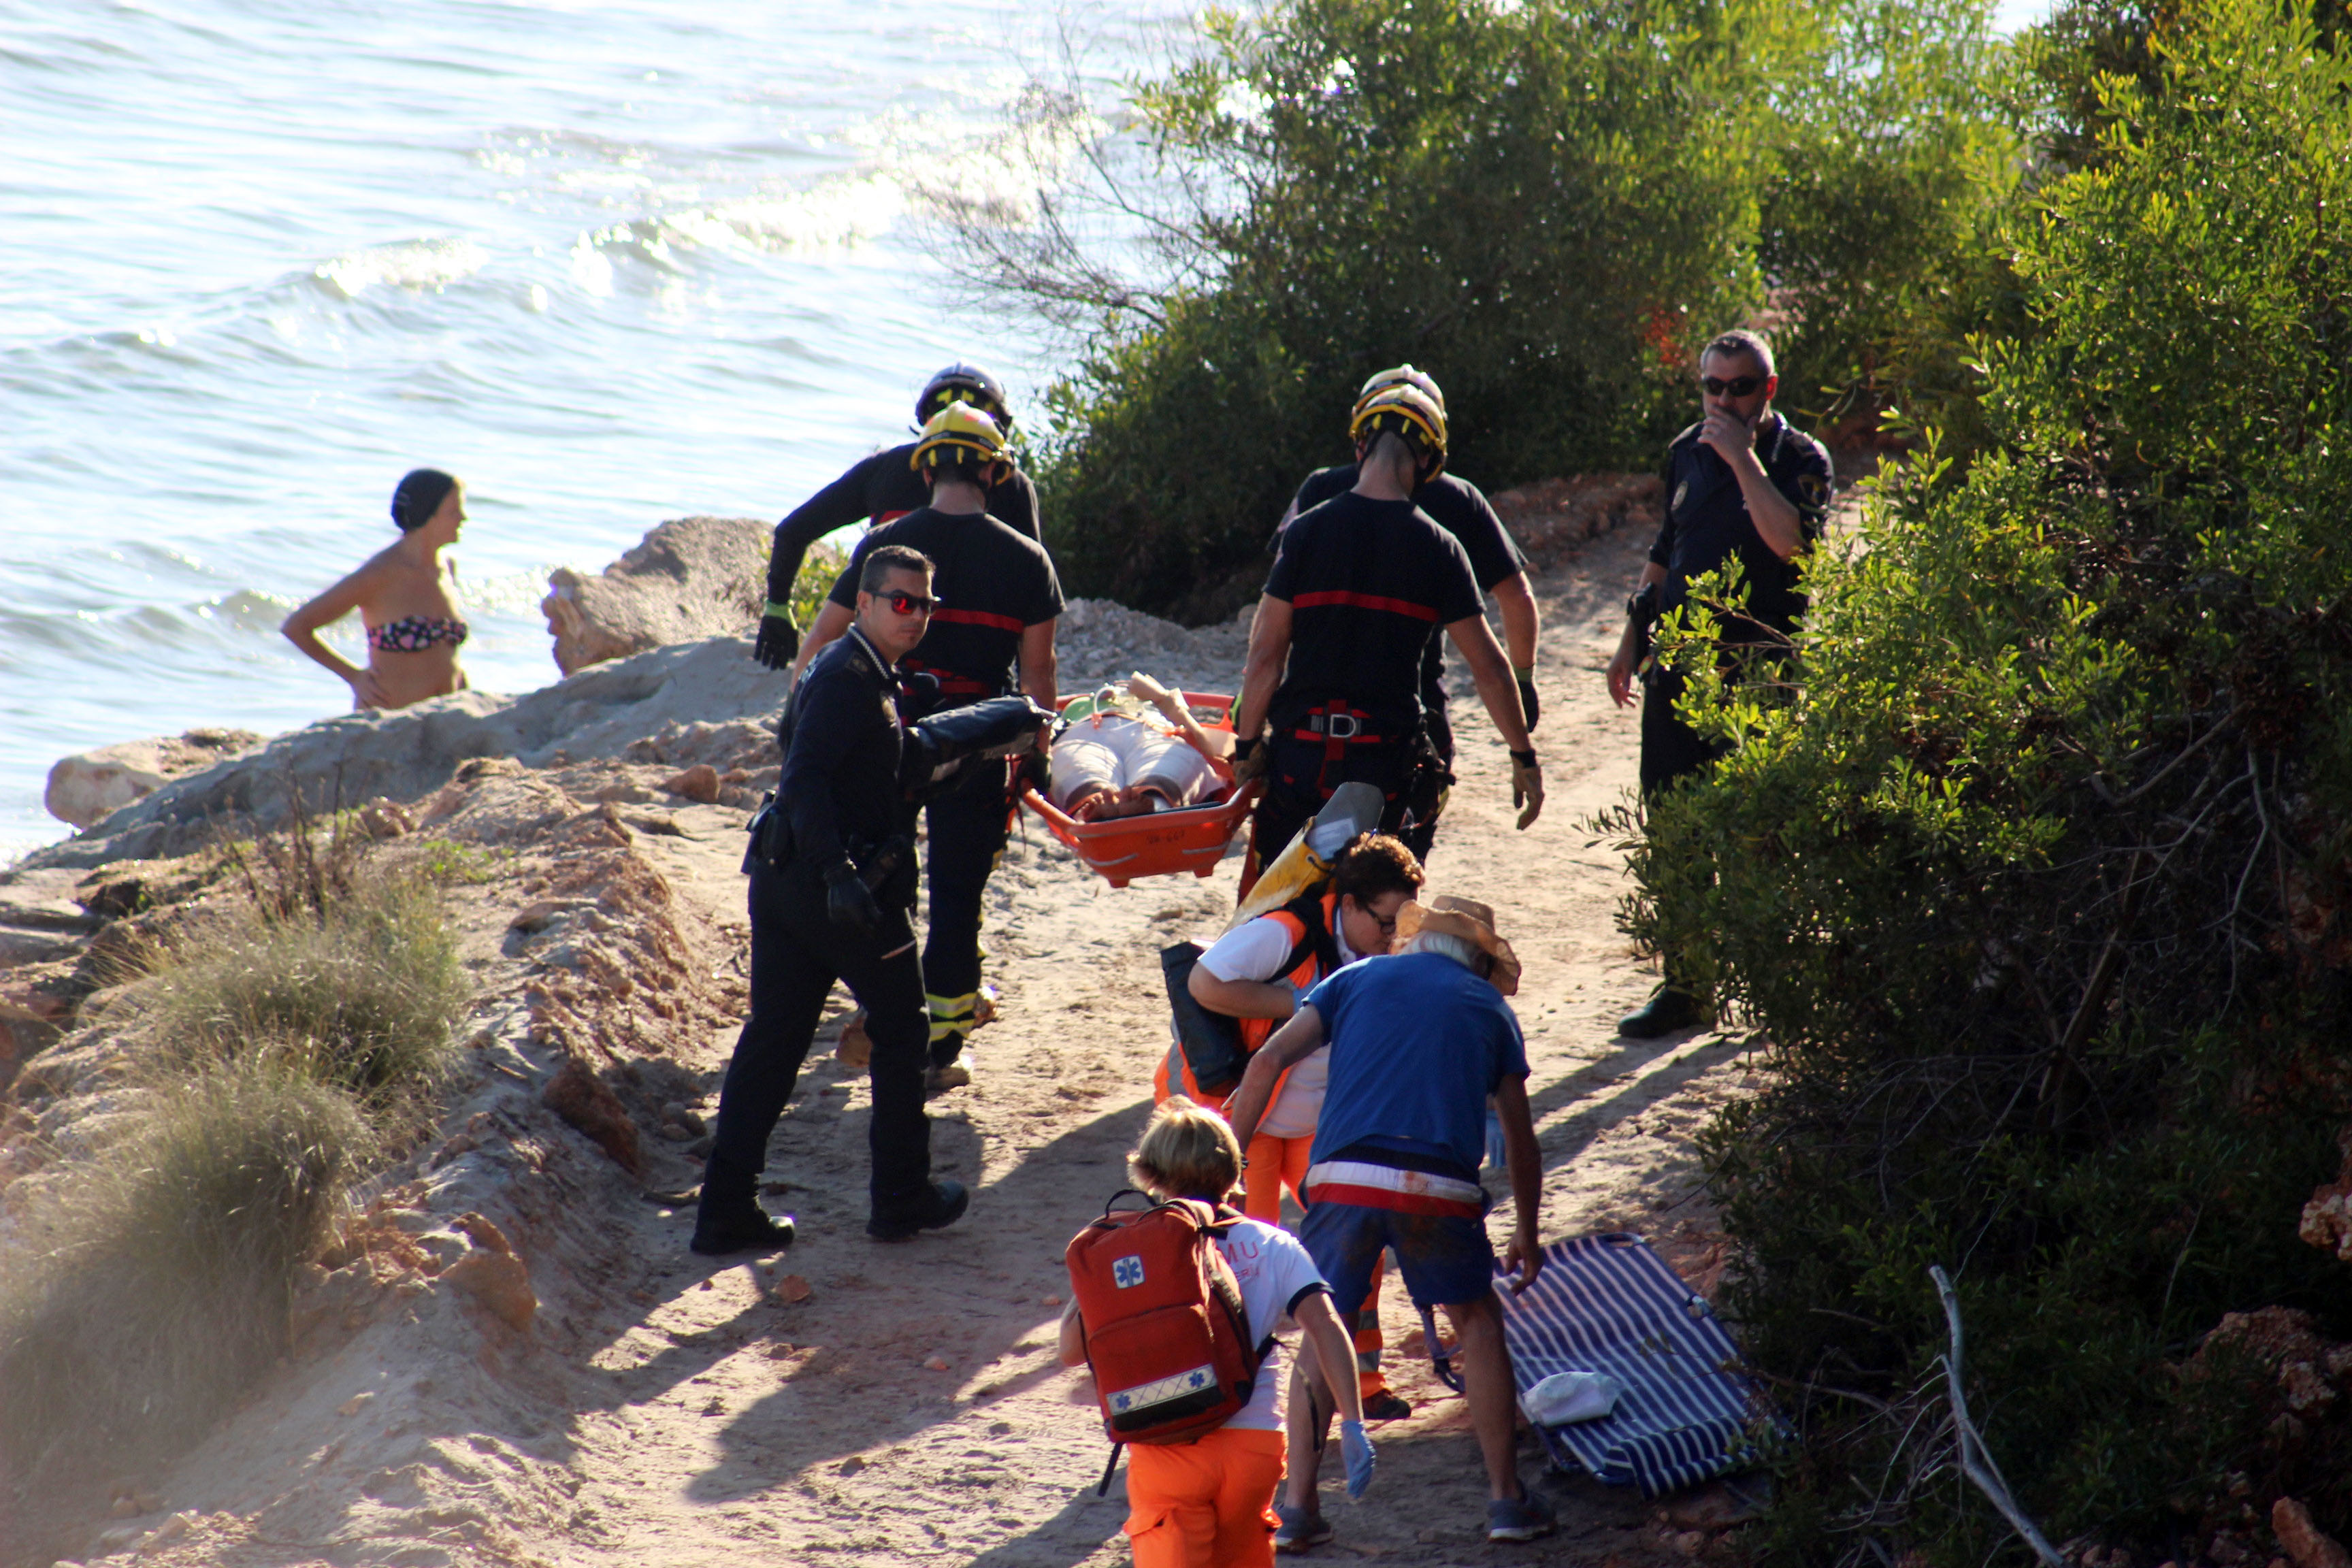 The injured lady was stretchered off the beach